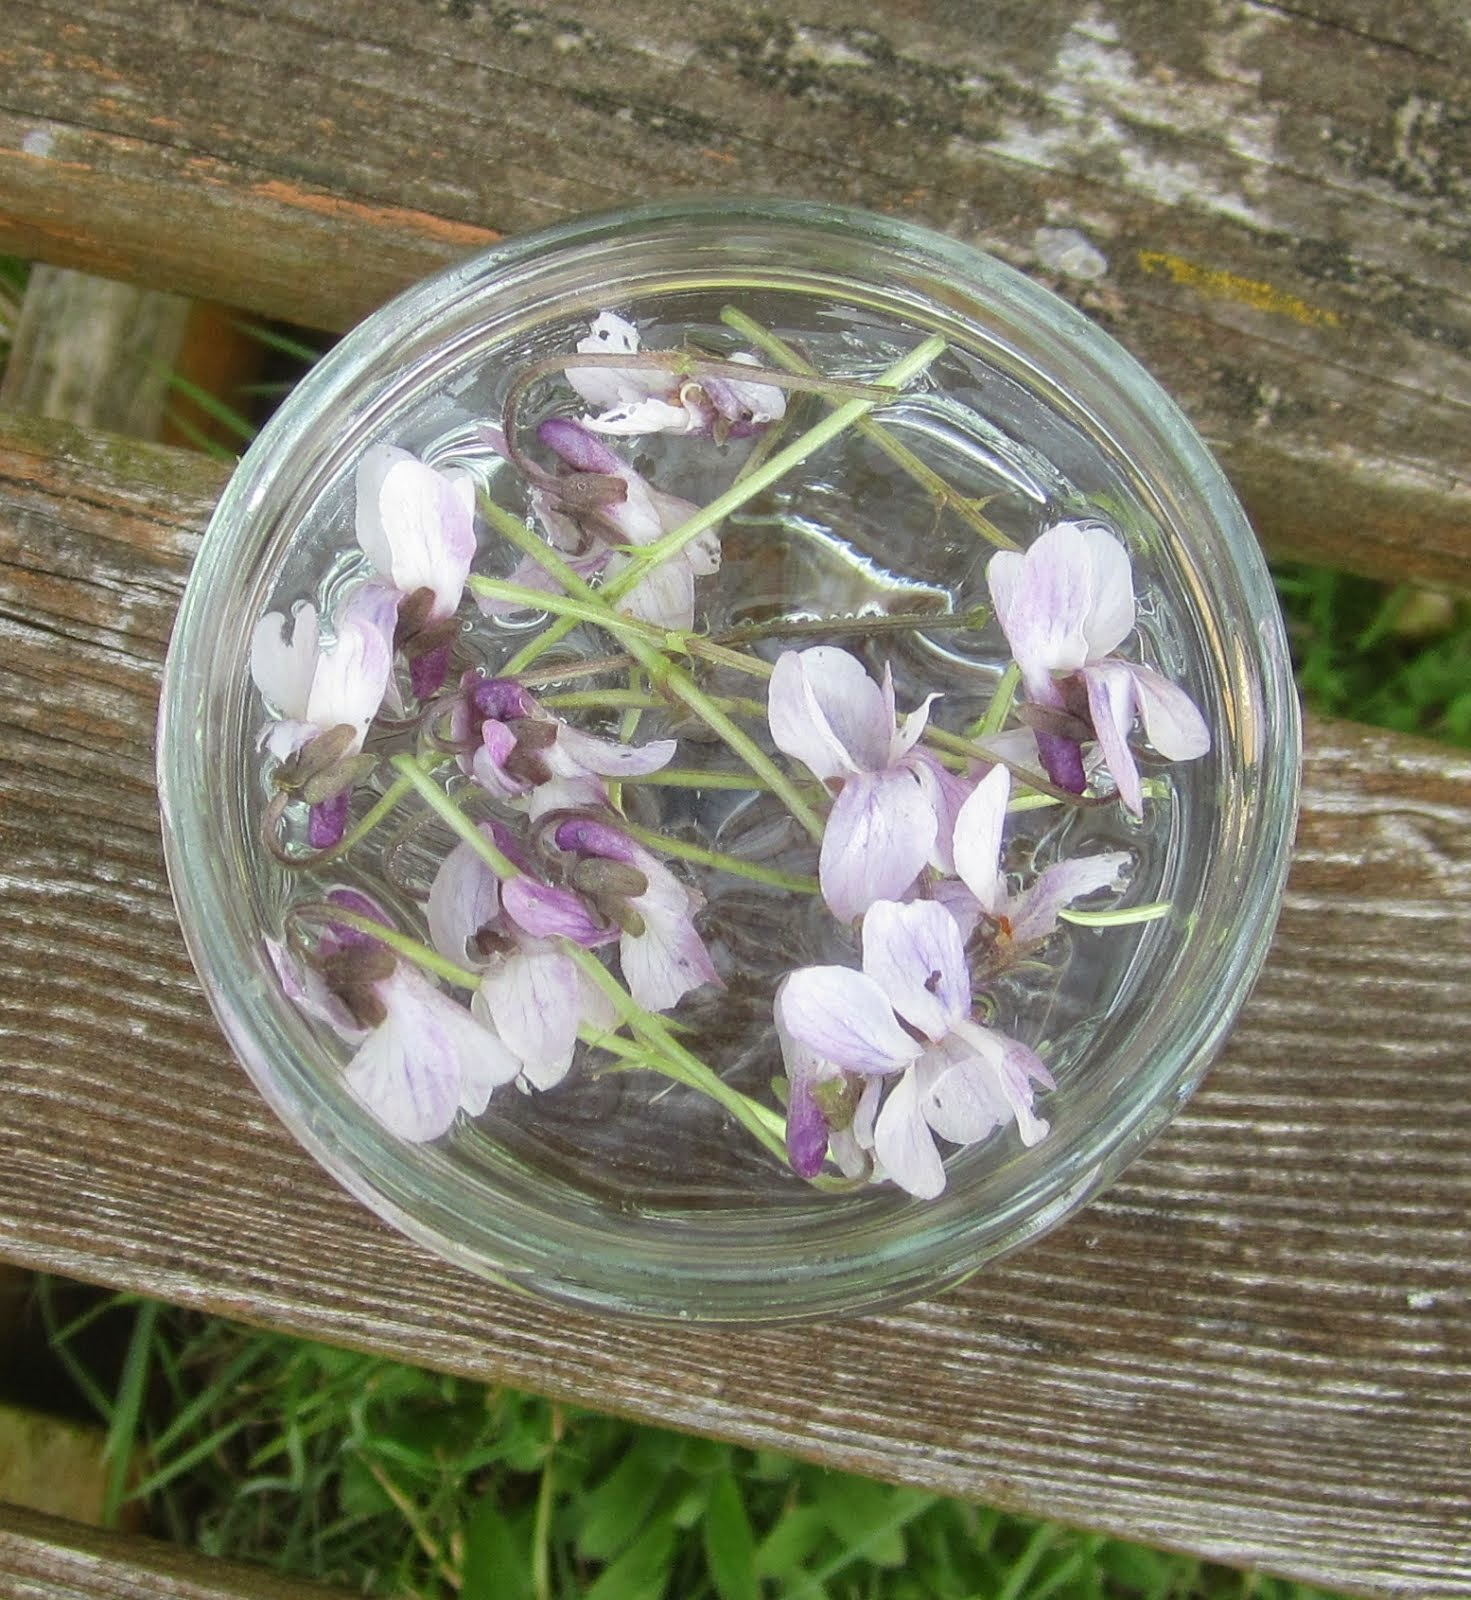 Flower essence set to infuse